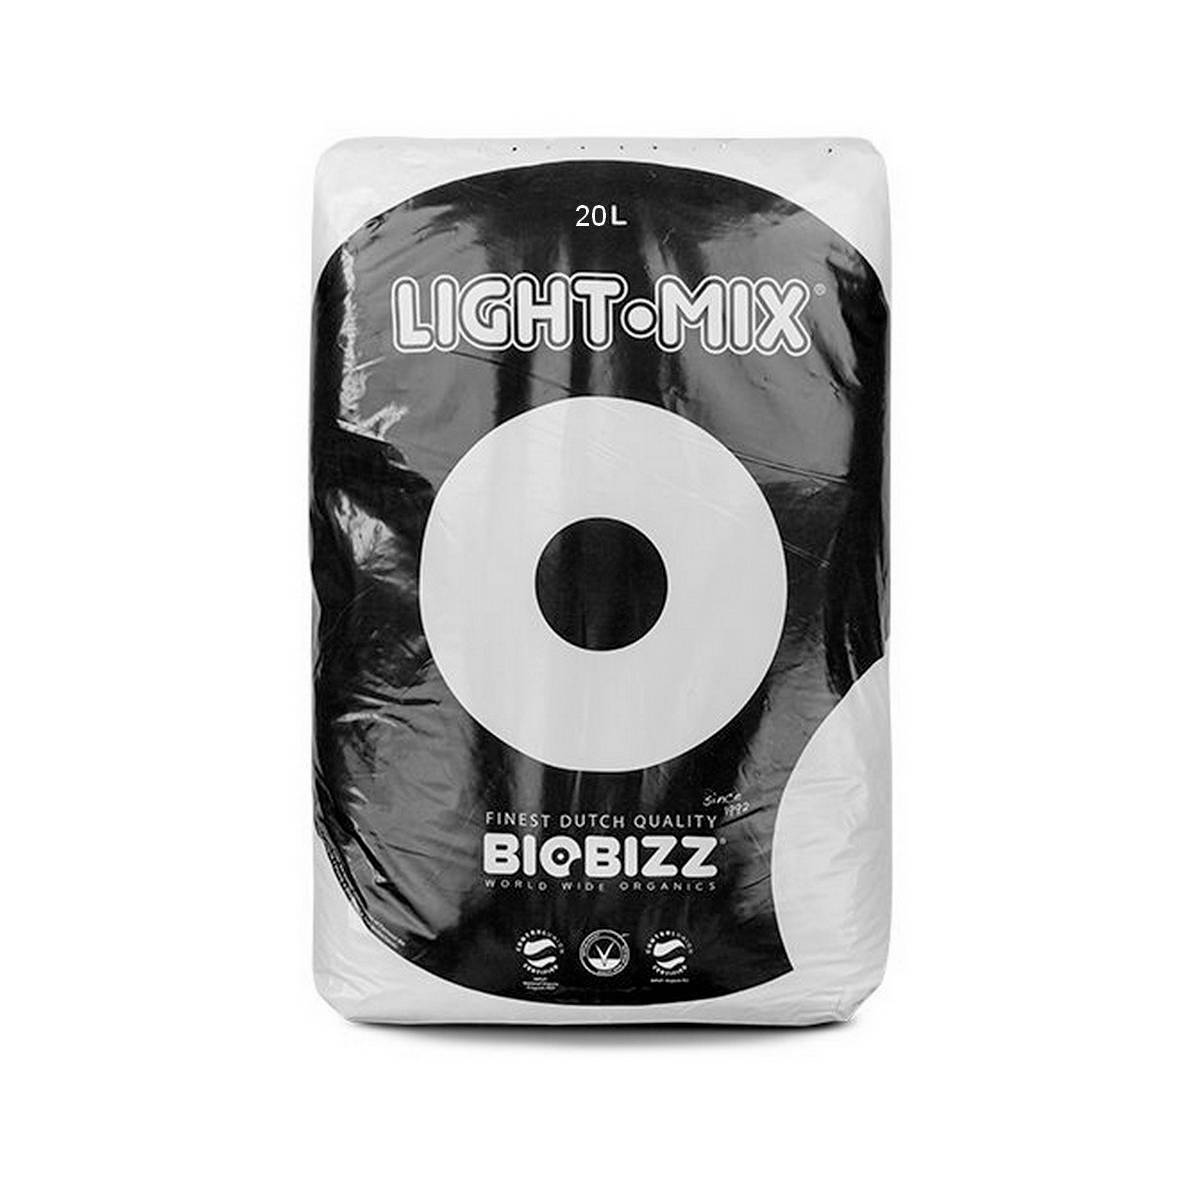 Cutting pack - SpectraLINE 120cm x4 - LED horticultural lighting for young plants and cuttings